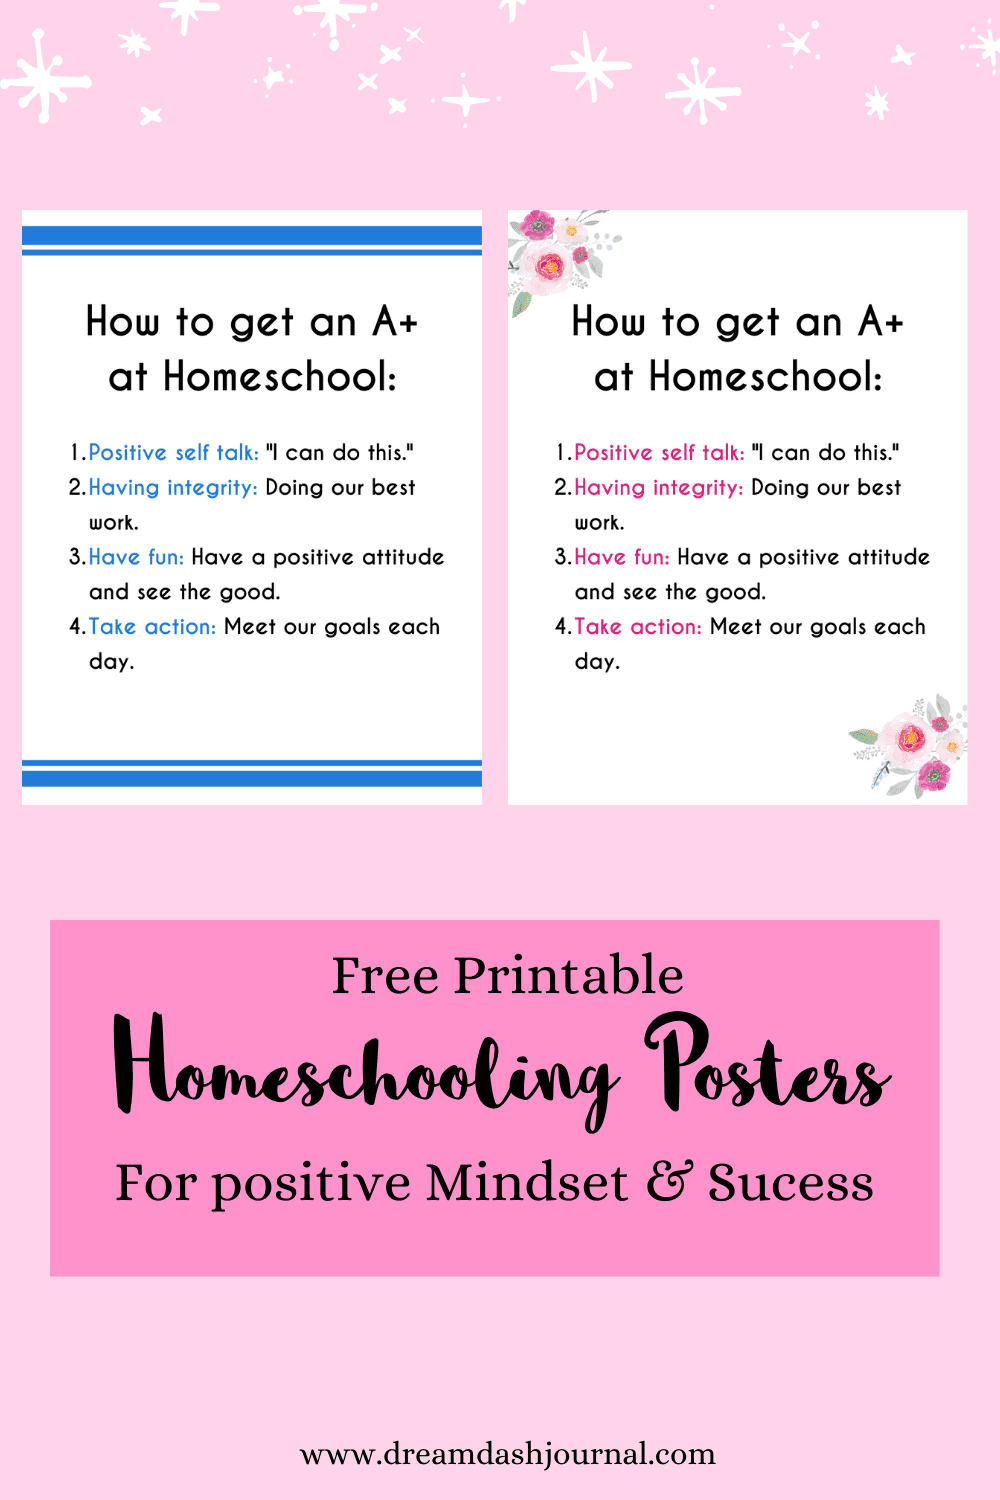 Free Printable Homeschool Posters: How to Get an A in Homeschool